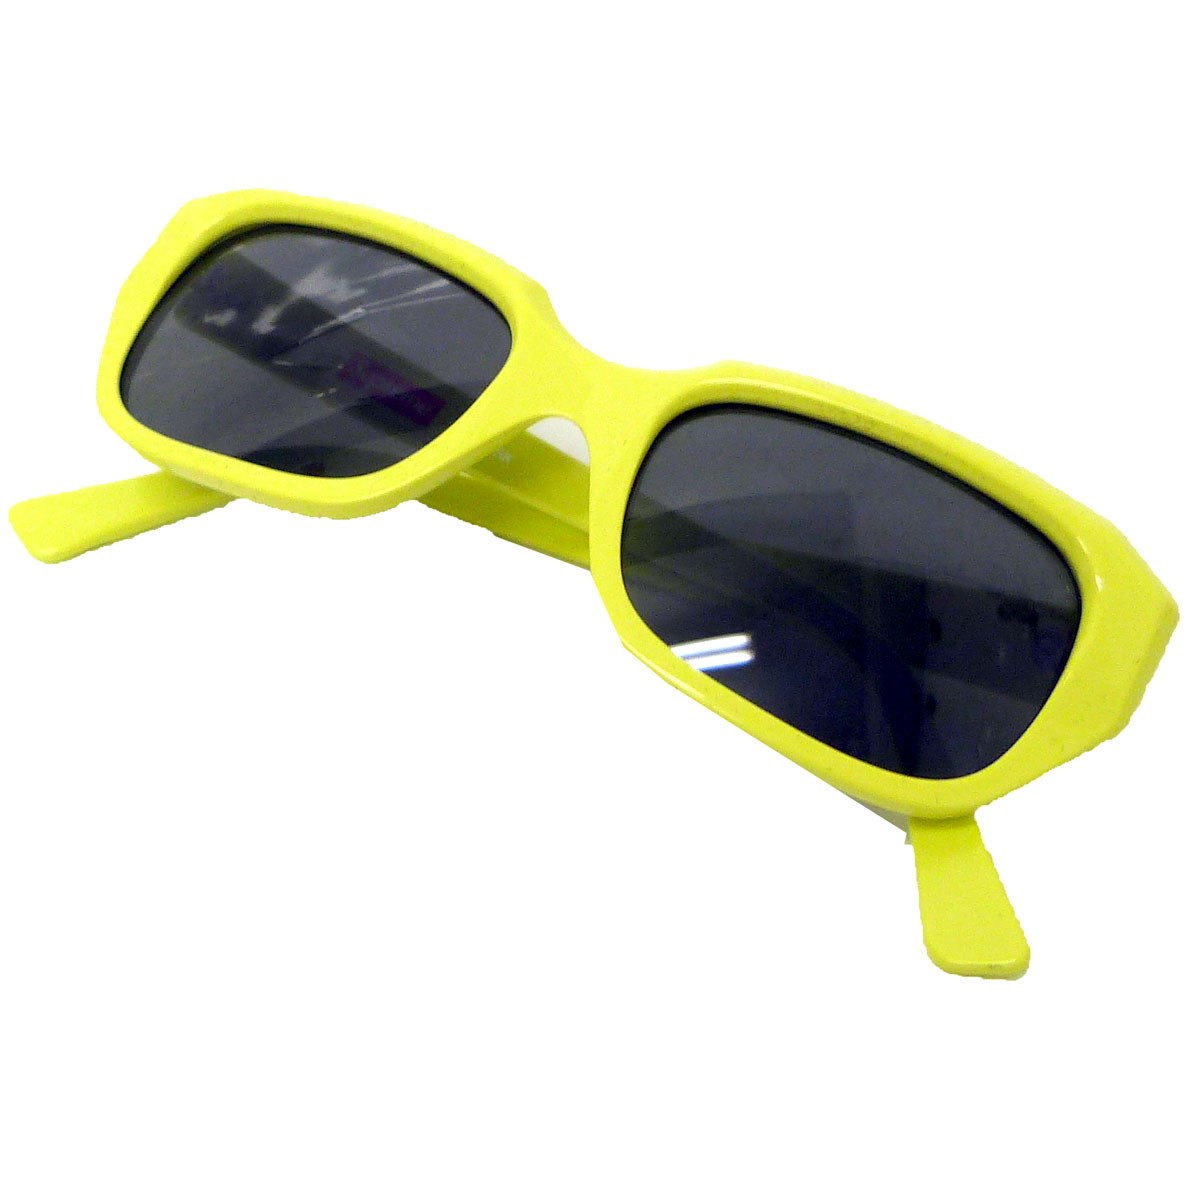 【中古】SUPREME 18SS「Booker Sunglasses」サングラス 【送料無料】 【081304】 【KIND1550】